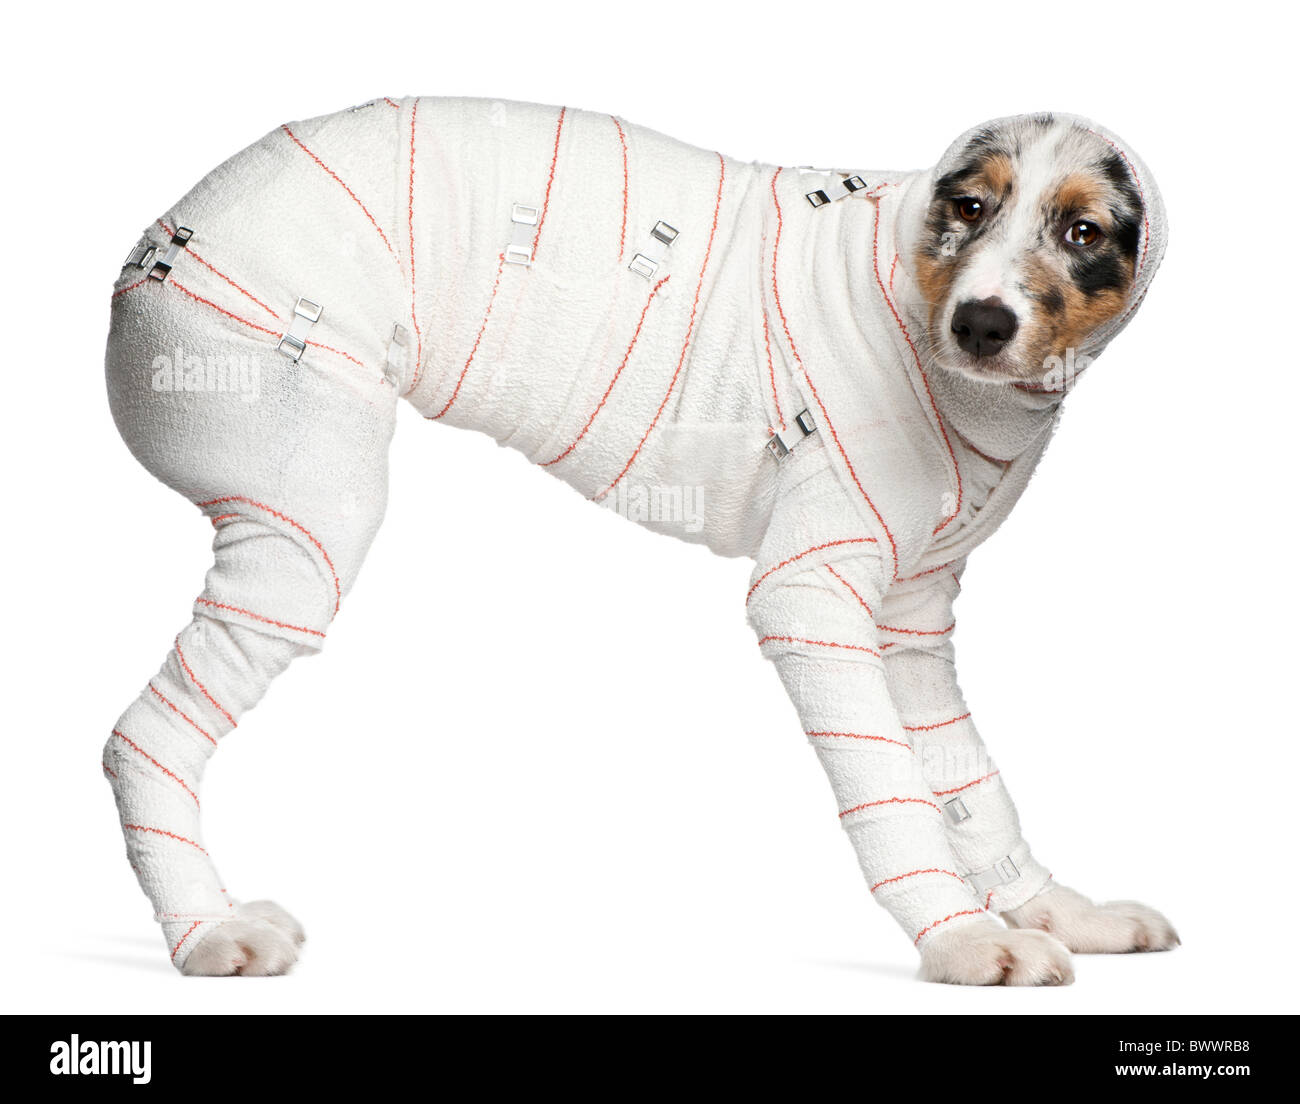 Australian Shepherd puppy in bandages, 5 months old, standing in front of white background - Stock Image